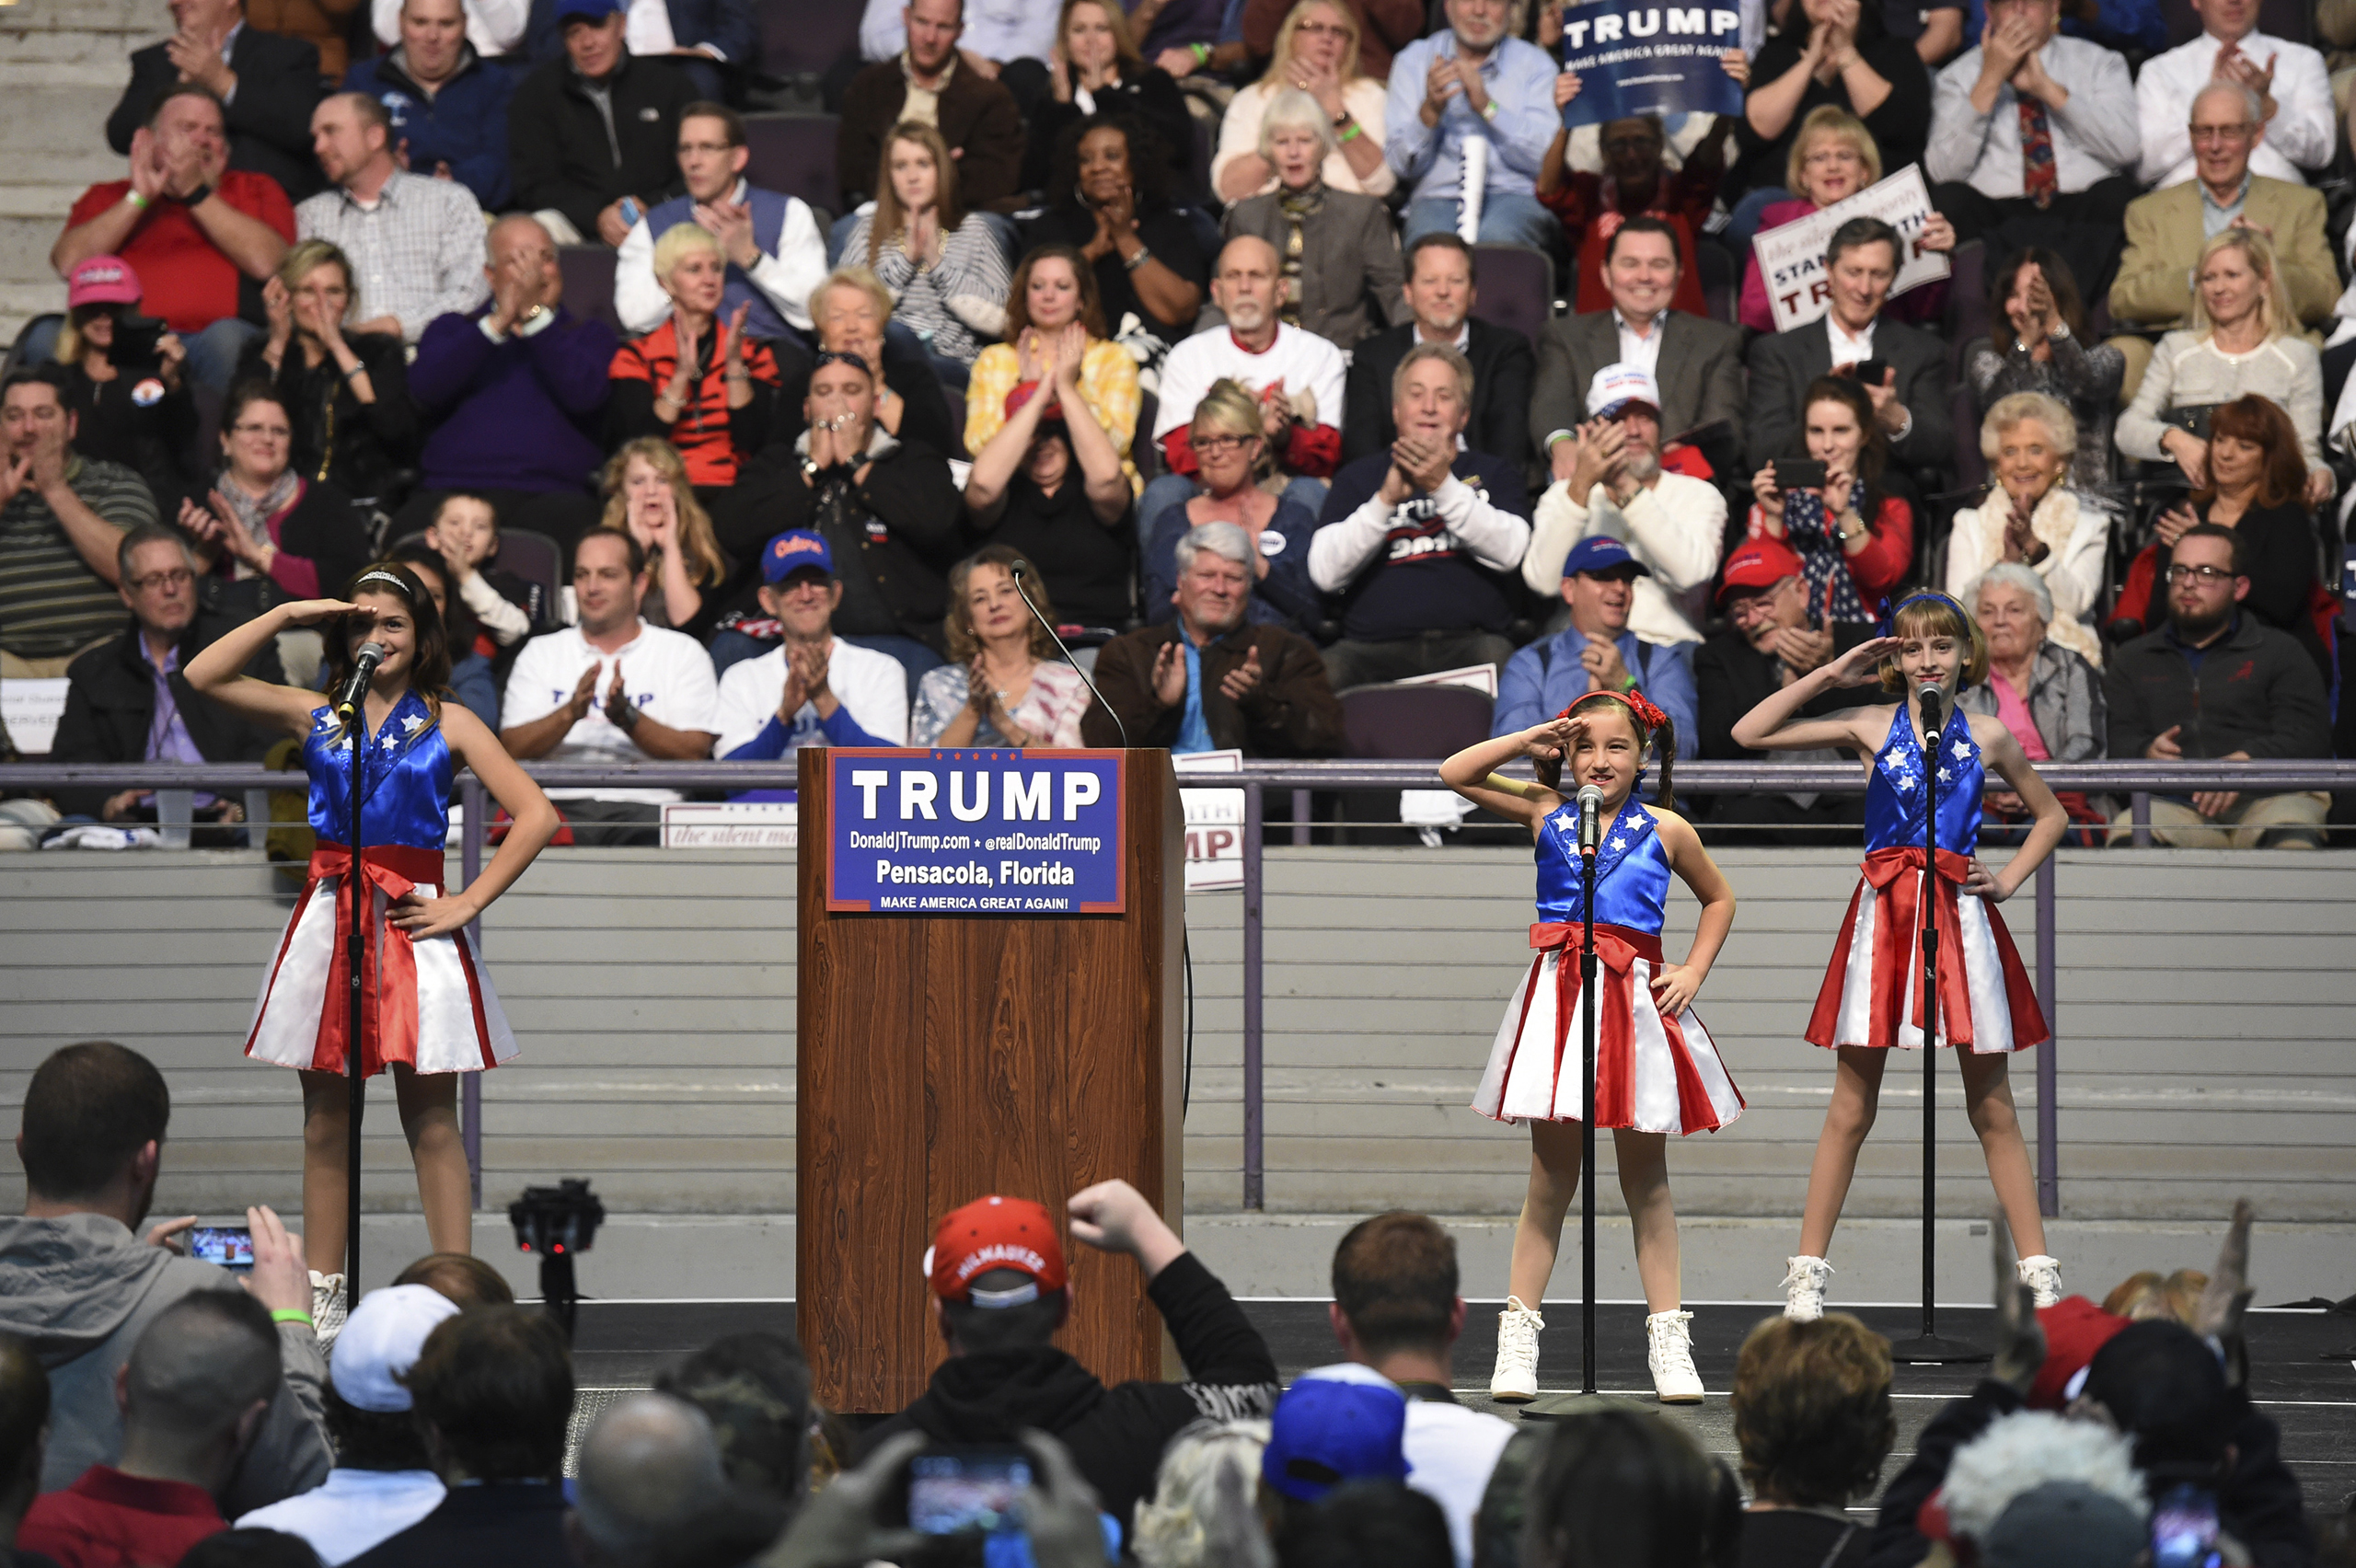 The  USA Freedom Kids  from Pensacola perform  Freedom's Call   during Donald Trump's campaign rally in Pensacola, Fla., Jan. 13, 2016.